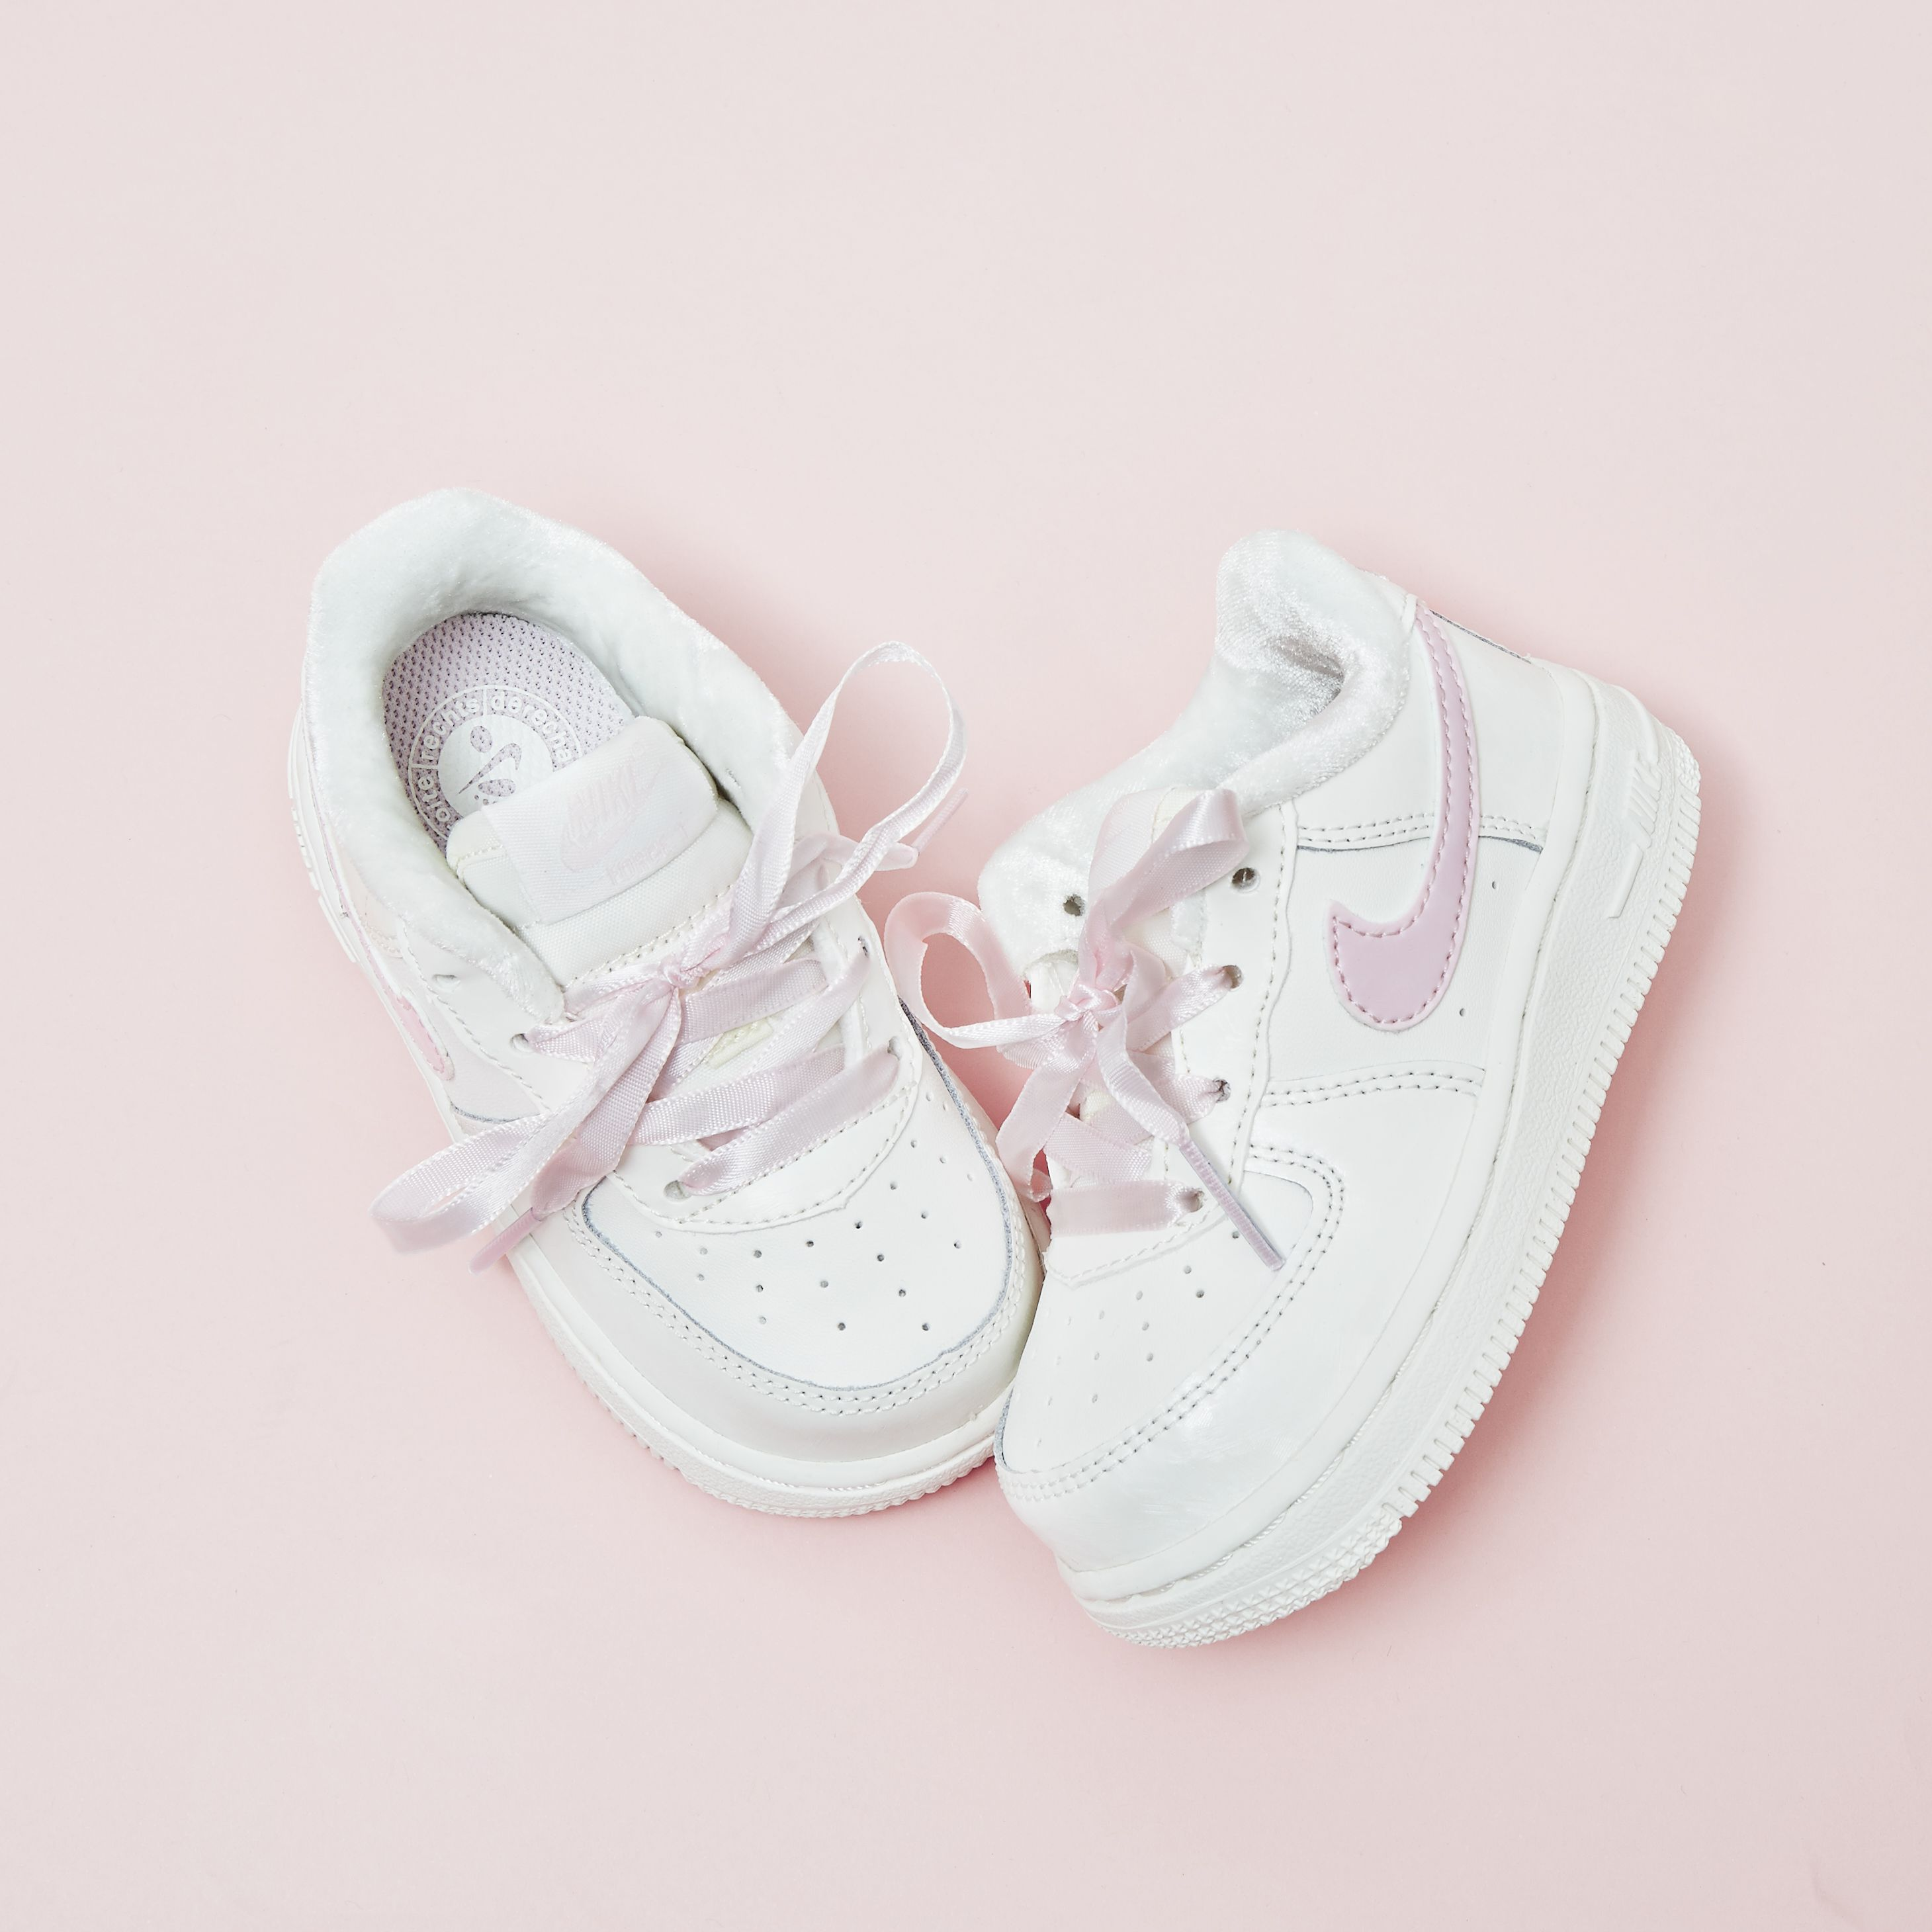 Nike Air Force 1 Infant White Artic Pink Unisex Cute Baby Shoes Baby Girl Outfits Newborn Baby Girl Converse